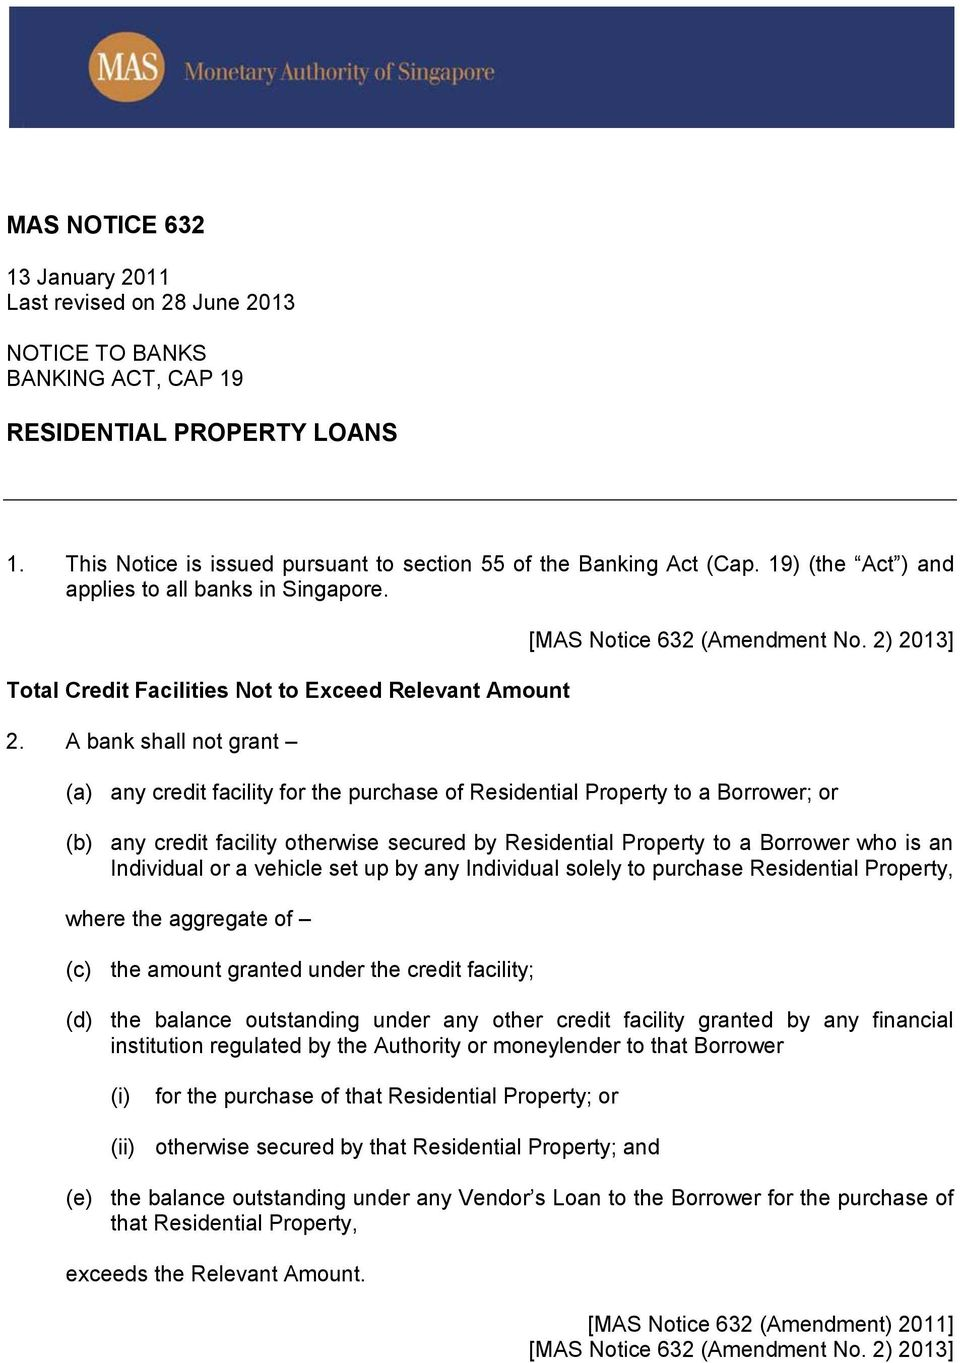 A bank shall not grant (a) any credit facility for the purchase of Residential Property to a Borrower; or (b) any credit facility otherwise secured by Residential Property to a Borrower who is an